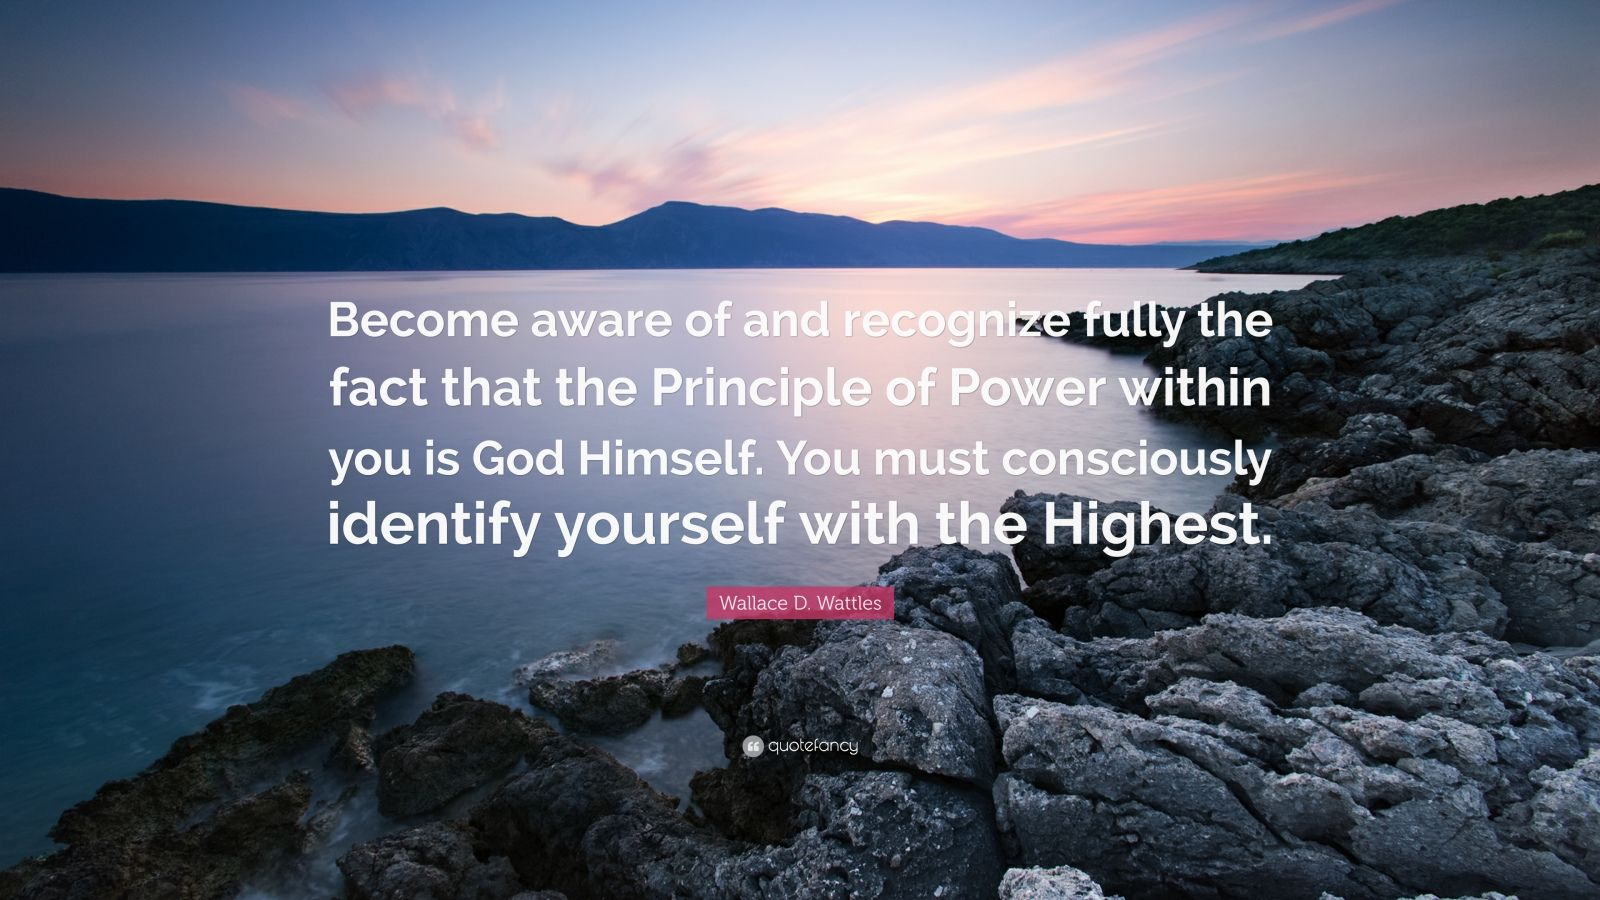 """Wallace D. Wattles Quote: """"Become aware of and recognize fully the fact that the Principle of Power within you is God Himself. You must consciously identify yourself with the Highest."""""""